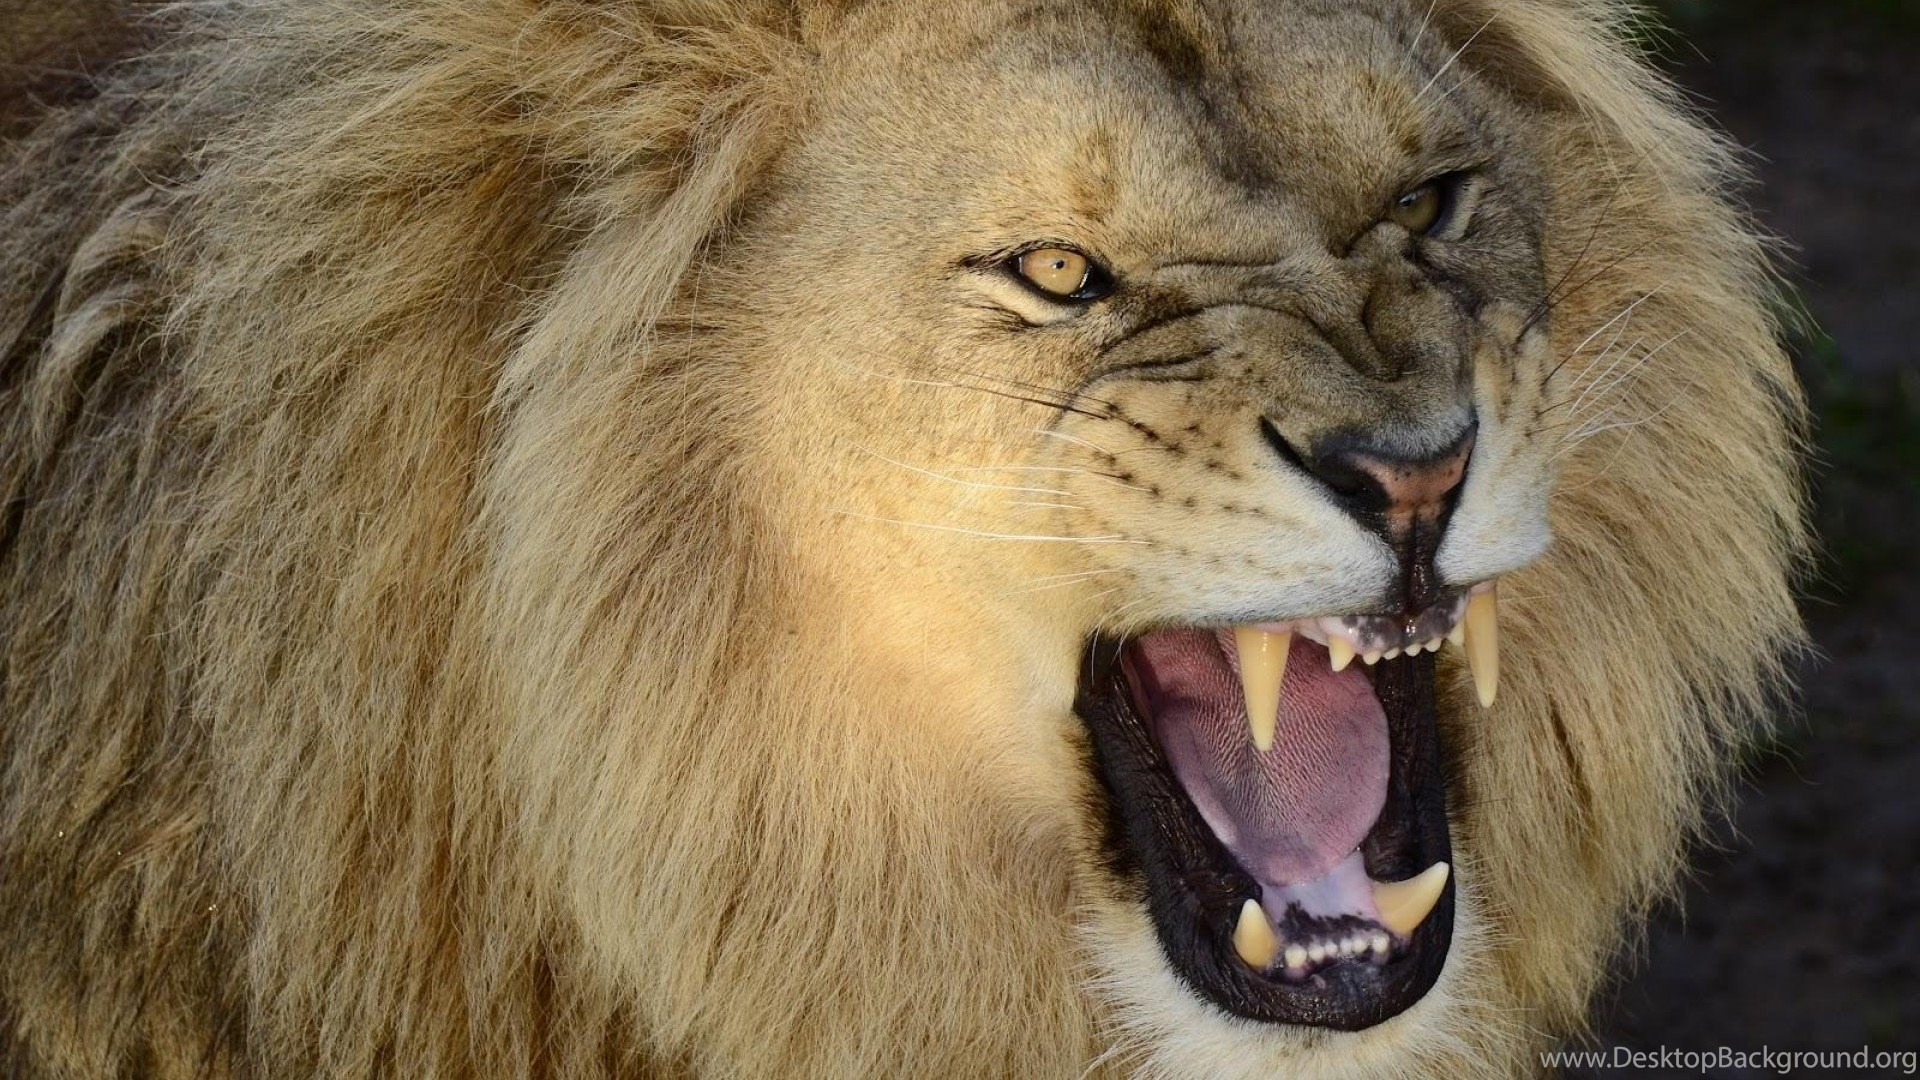 Pictures Of A Roaring Lion Wallpapers Desktop Background